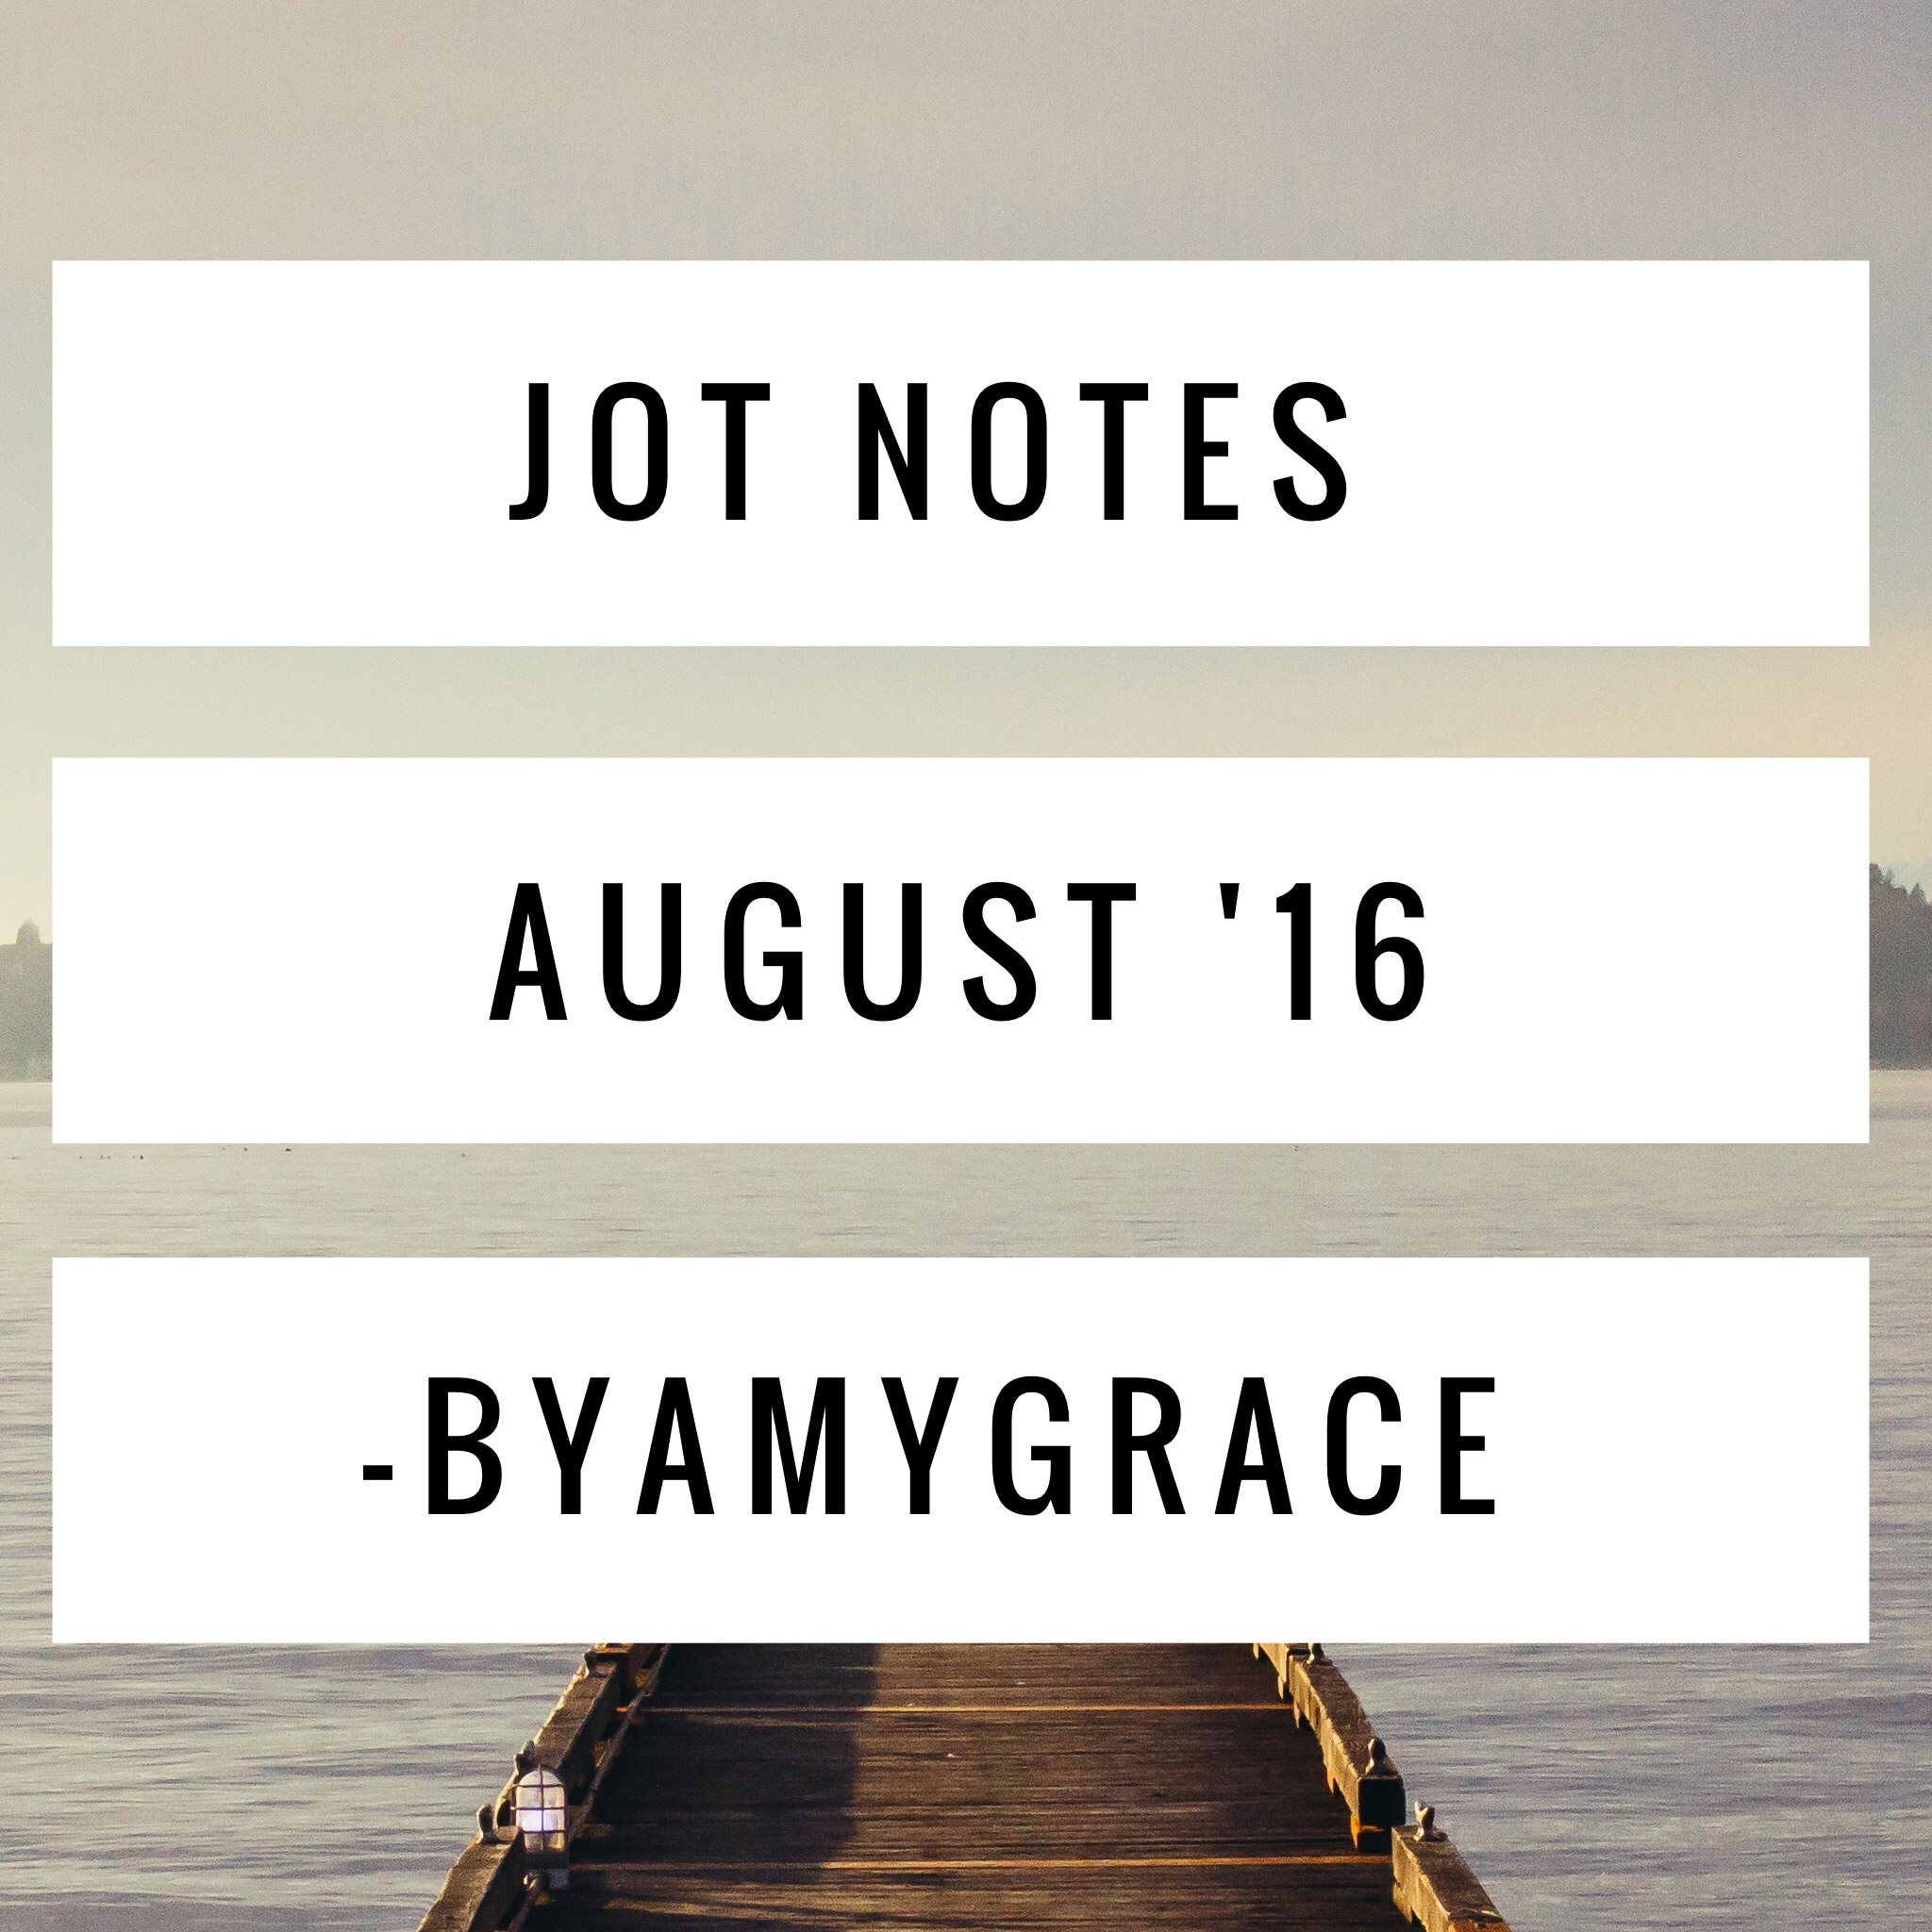 jot notes.august.byamygrace